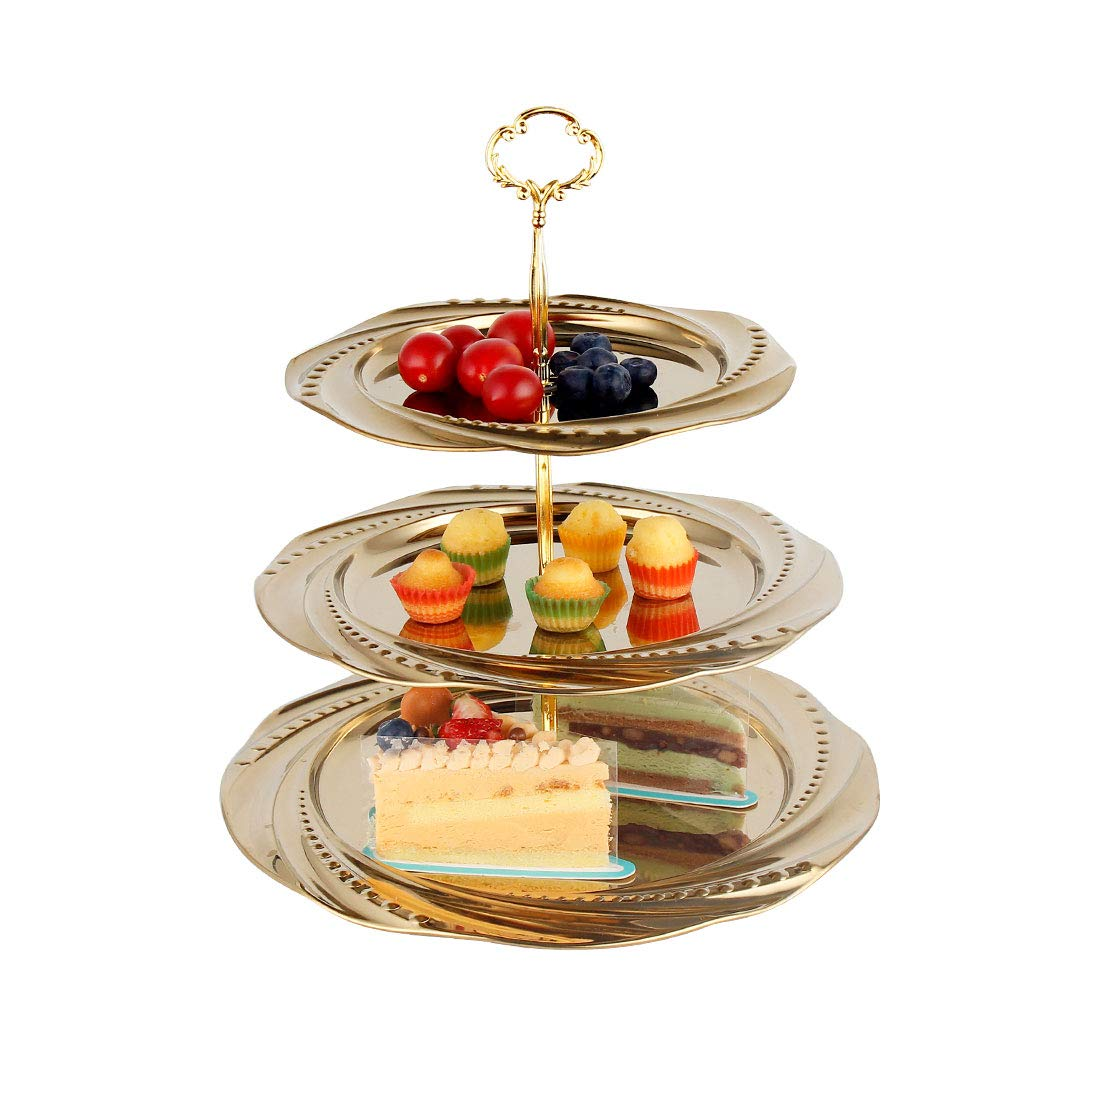 Cake Stand Desserts Fruit Plate Stainless Steel Cupcake Stand Fruits  Candy Buffet Plates Stand Serving Tray for Family Dinner Wedding House Birthday Party  Tea Party Serving Platter (3-Tier,Gold)